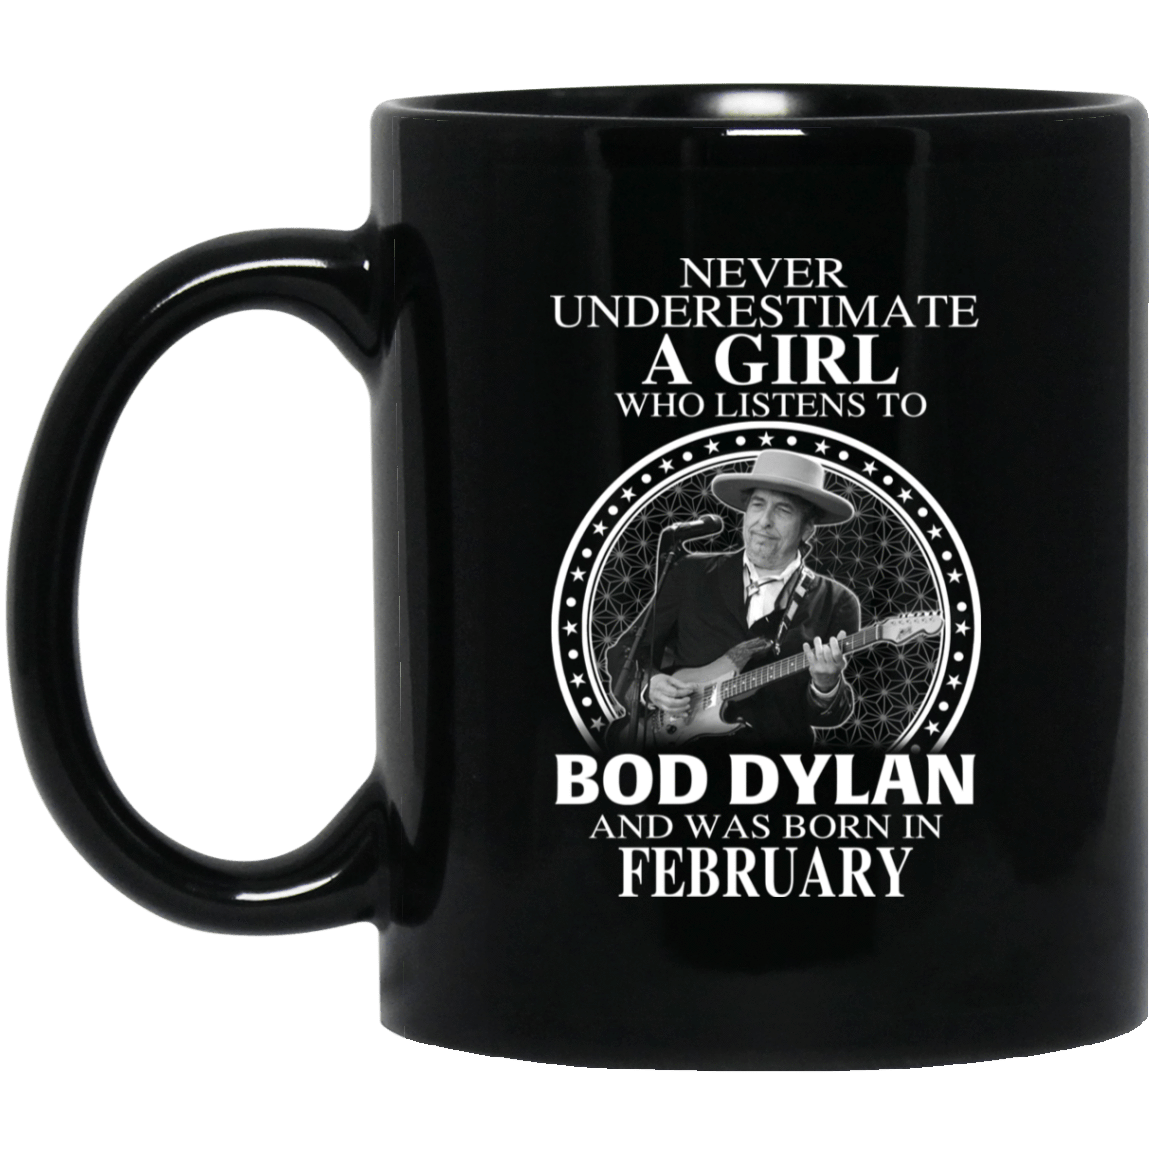 A Girl Who Listens To Bob Dylan And Was Born In February Mug 1065-10181-76154840-49307 - Tee Ript